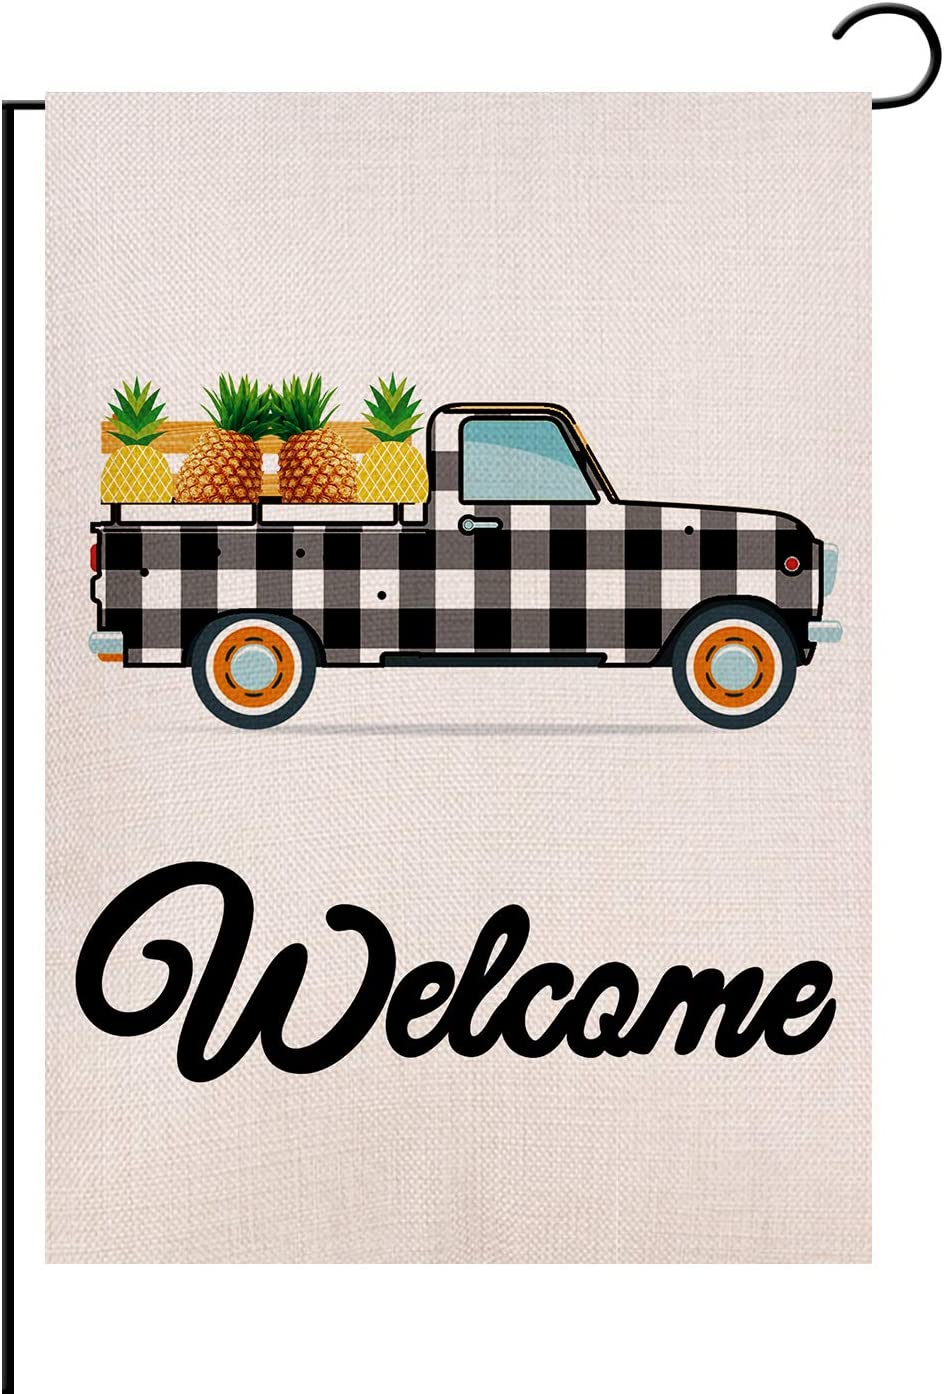 REUTGN Welcome Pineapple Truck Garden Flag Vertical Double Sided, Black and White Buffalo Check Plaid Rustic Truck Farmhouse Burlap for Spring Summer Outdoor Indoor Decoration 12.5 x 18 Inch